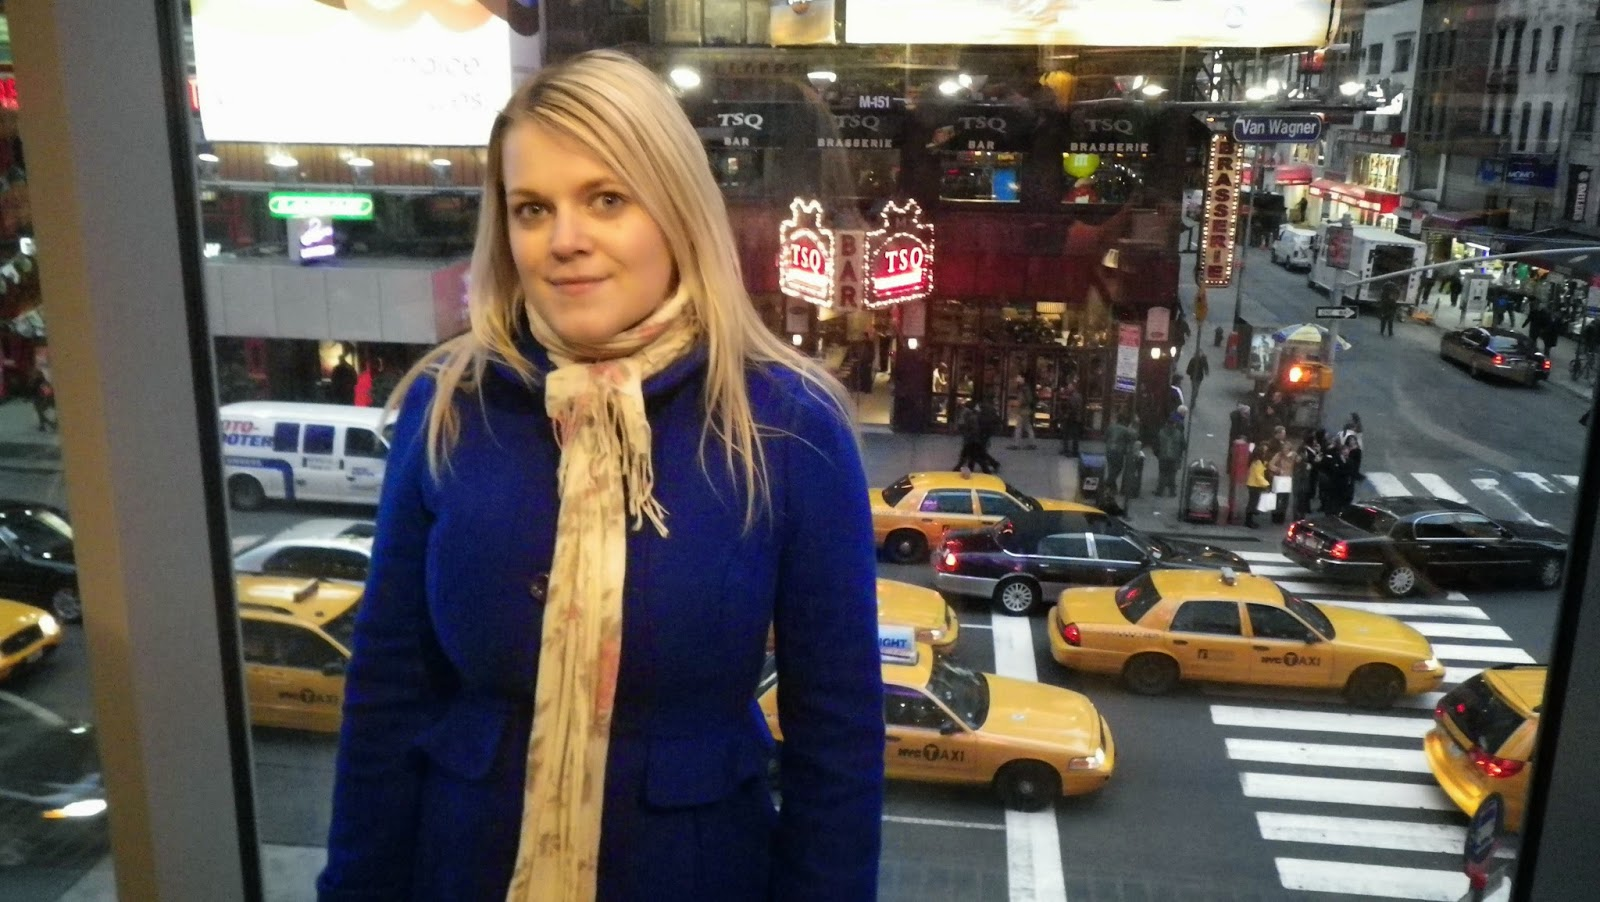 girl in blue coat in front of yellow cabs in New York